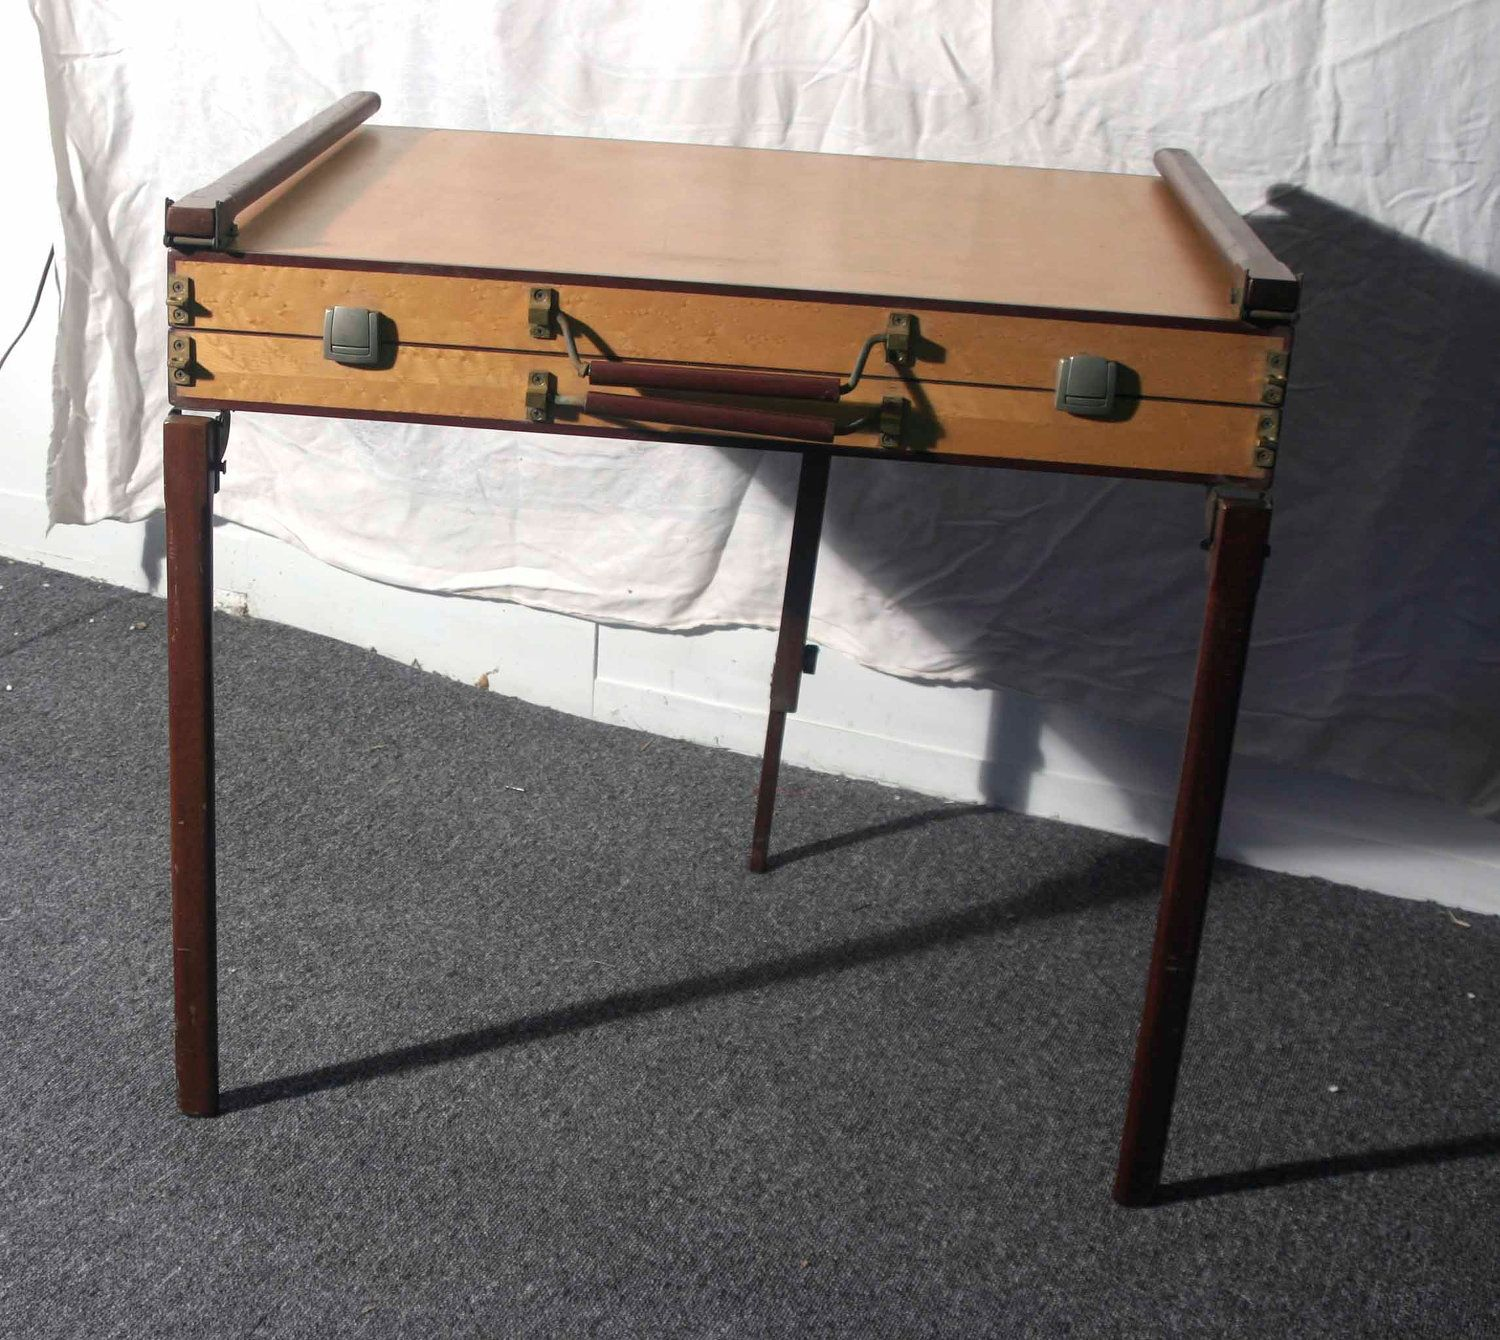 Suitcase Folding Table Opens To And Display Case Collapsable 2 200 00 Via Etsy